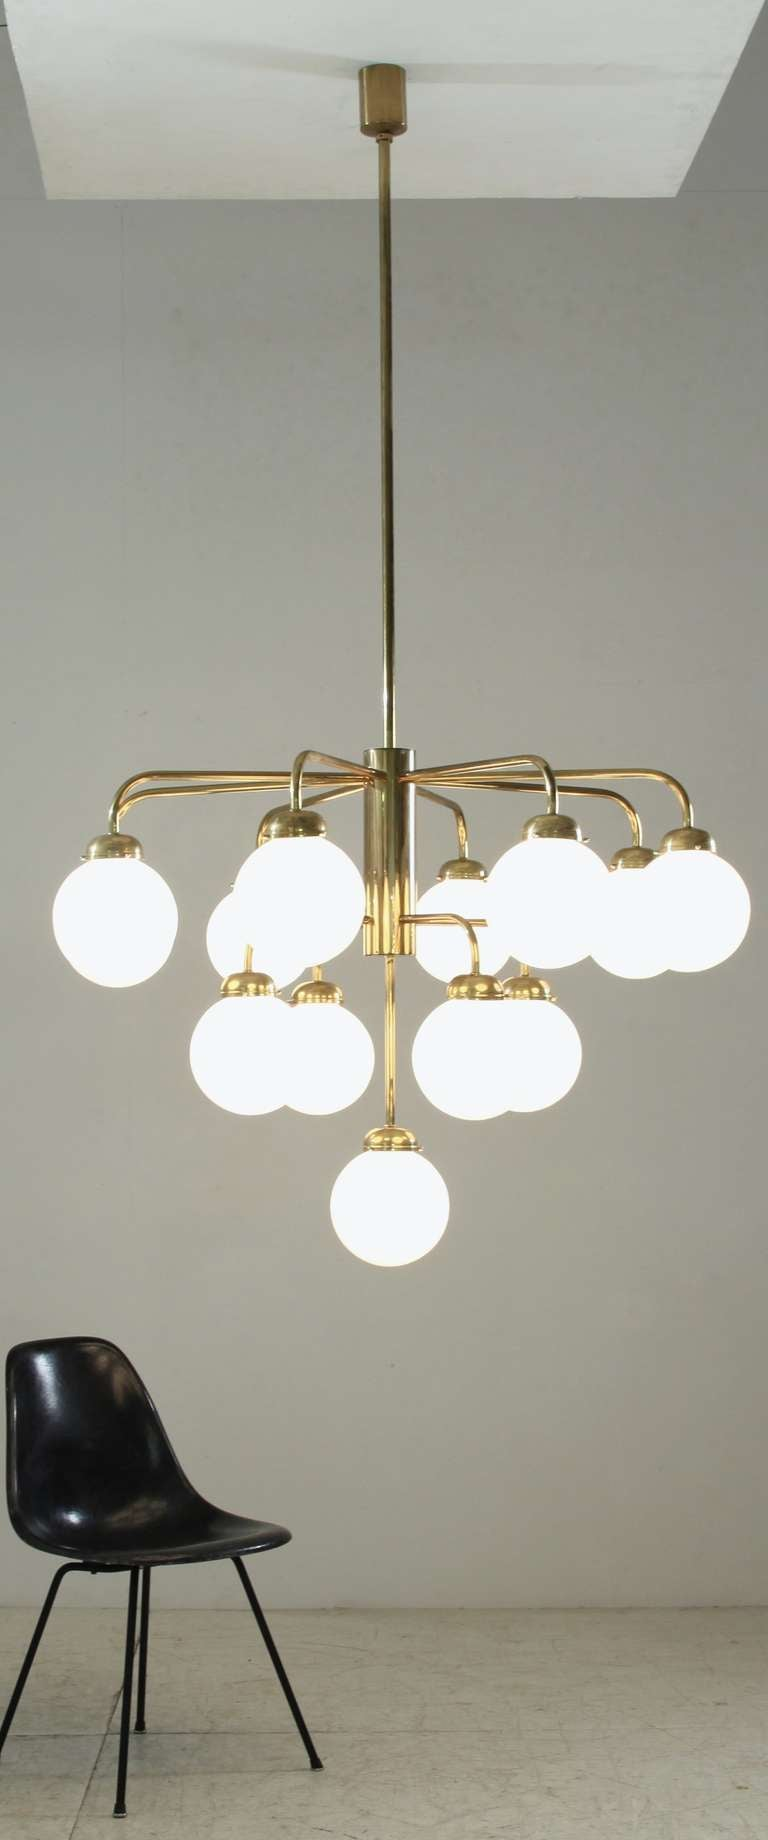 Mid-20th Century Very Large German Thirteen-Armed Brass Chandelier, 1960s